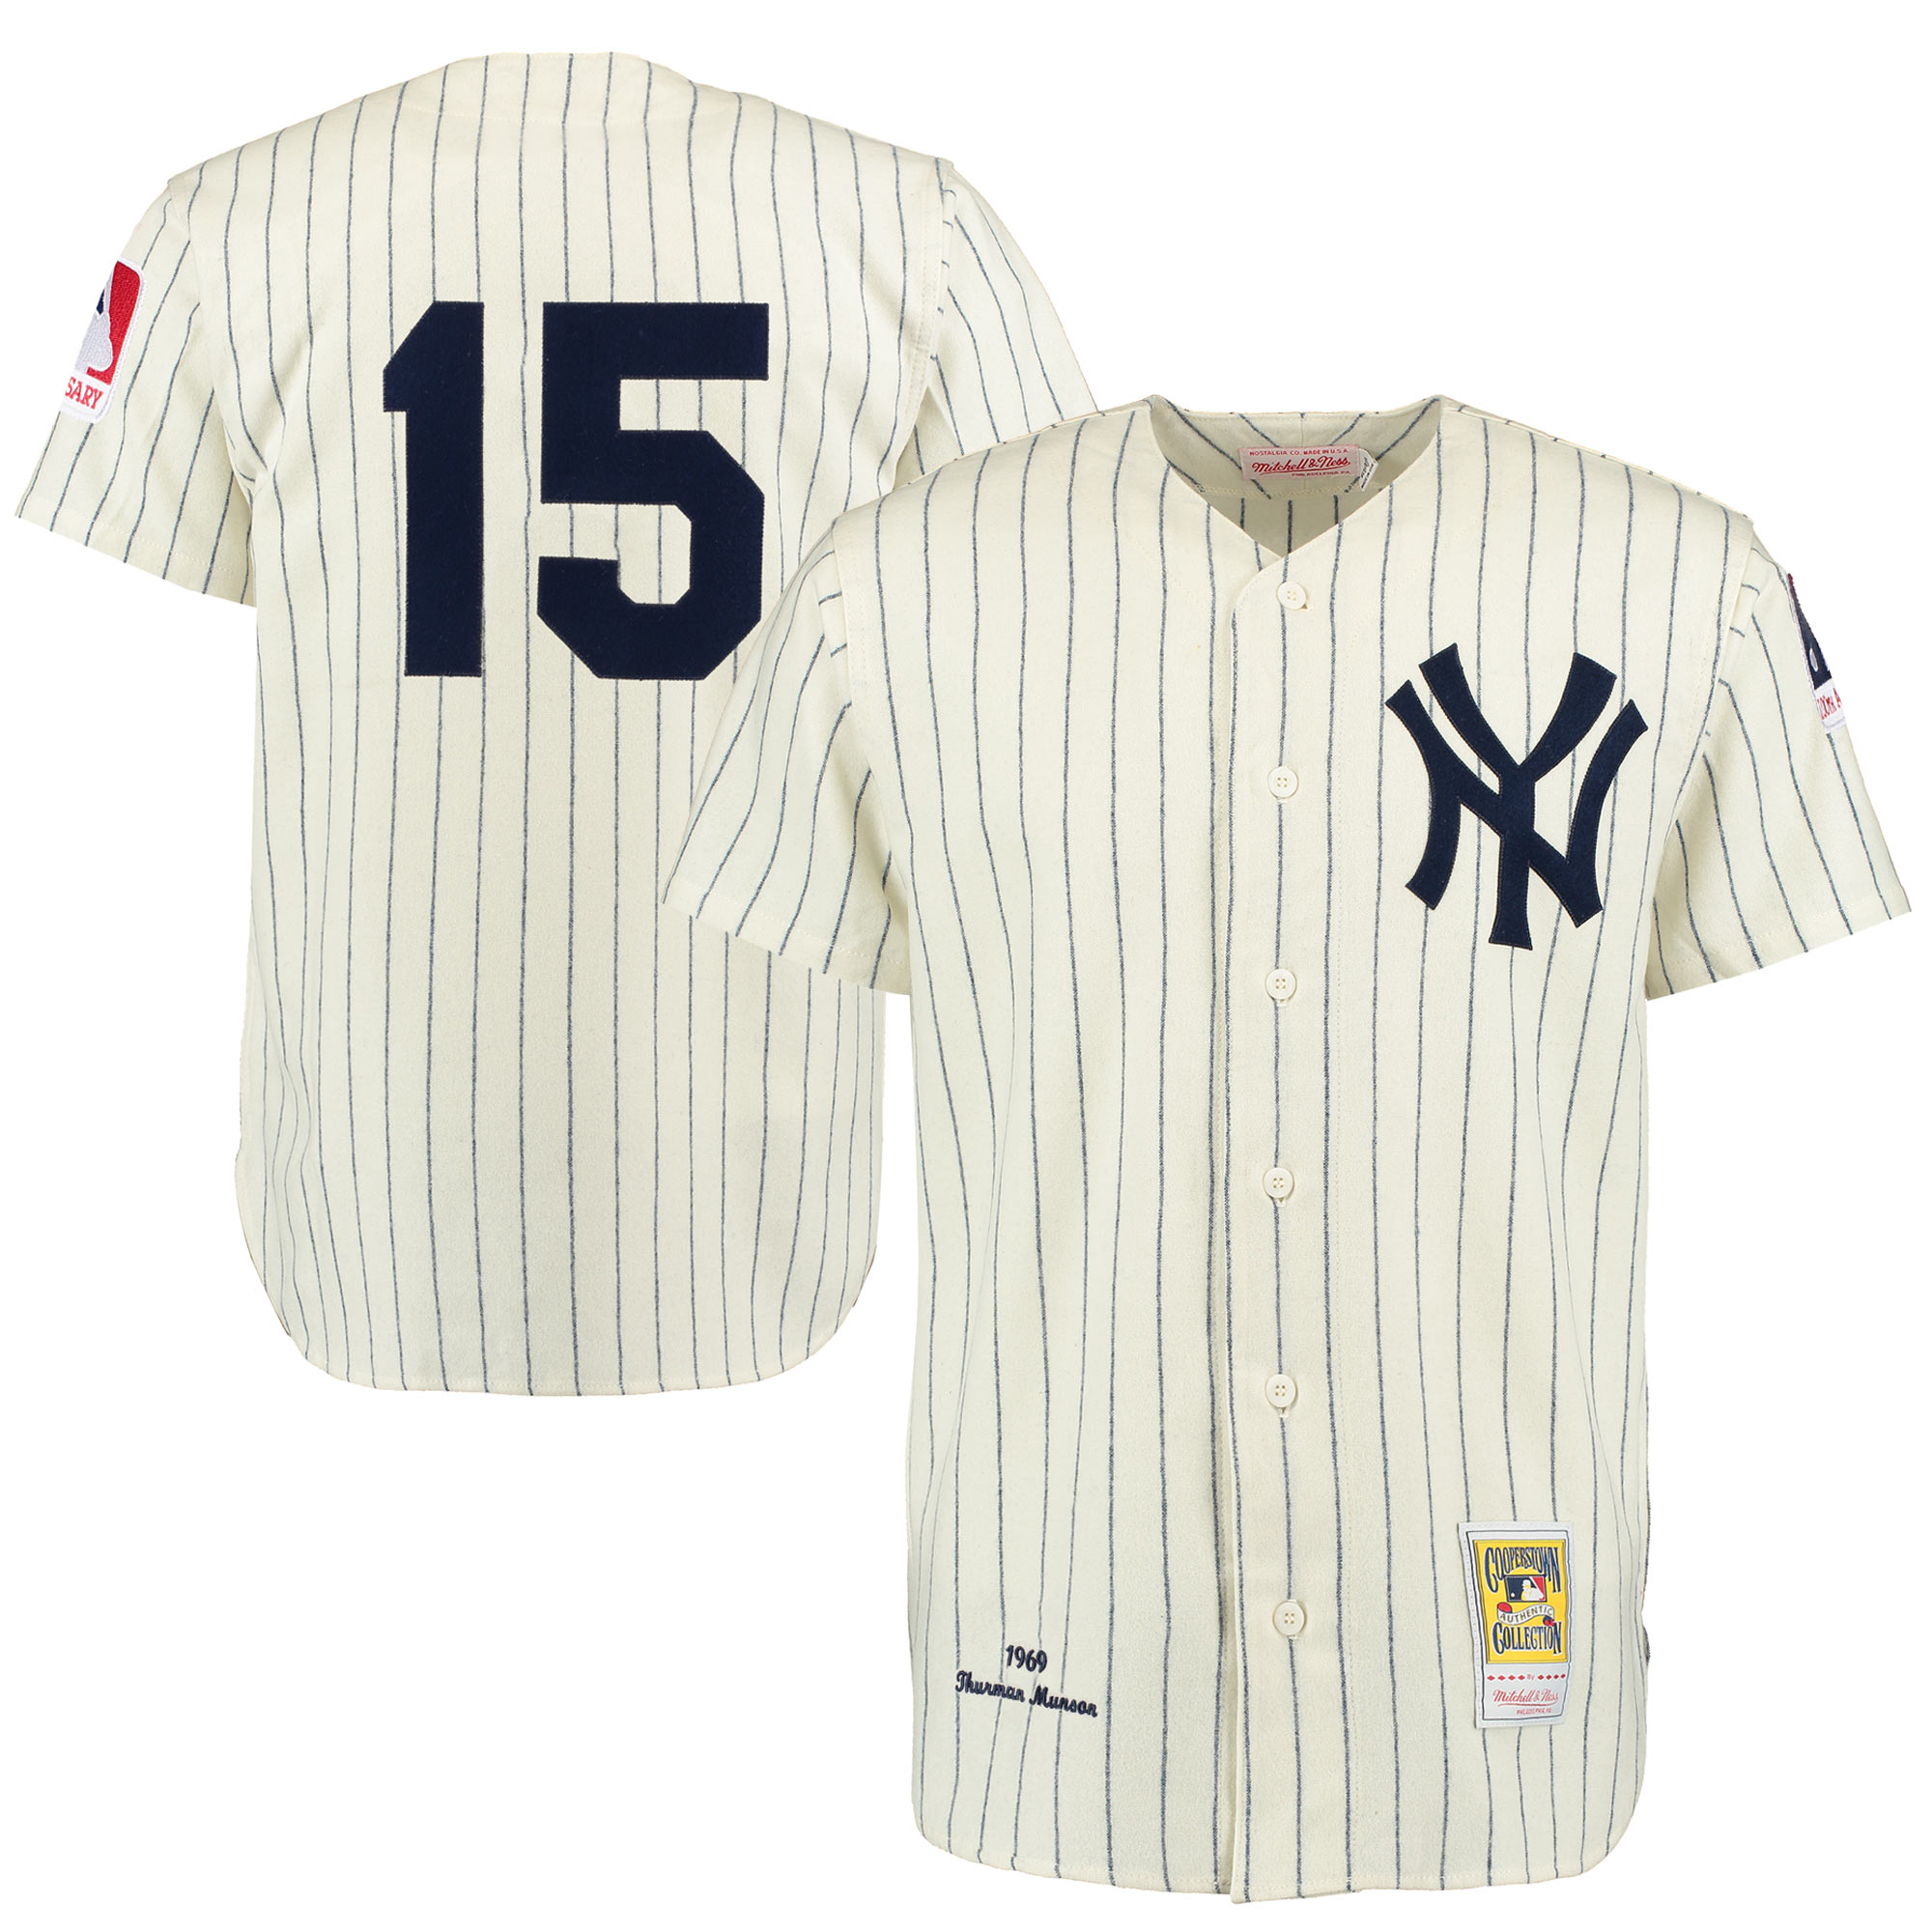 Thurman Munson New York Yankees Mitchell & Ness Throwback 1969 Authentic Jersey - Cream/Navy